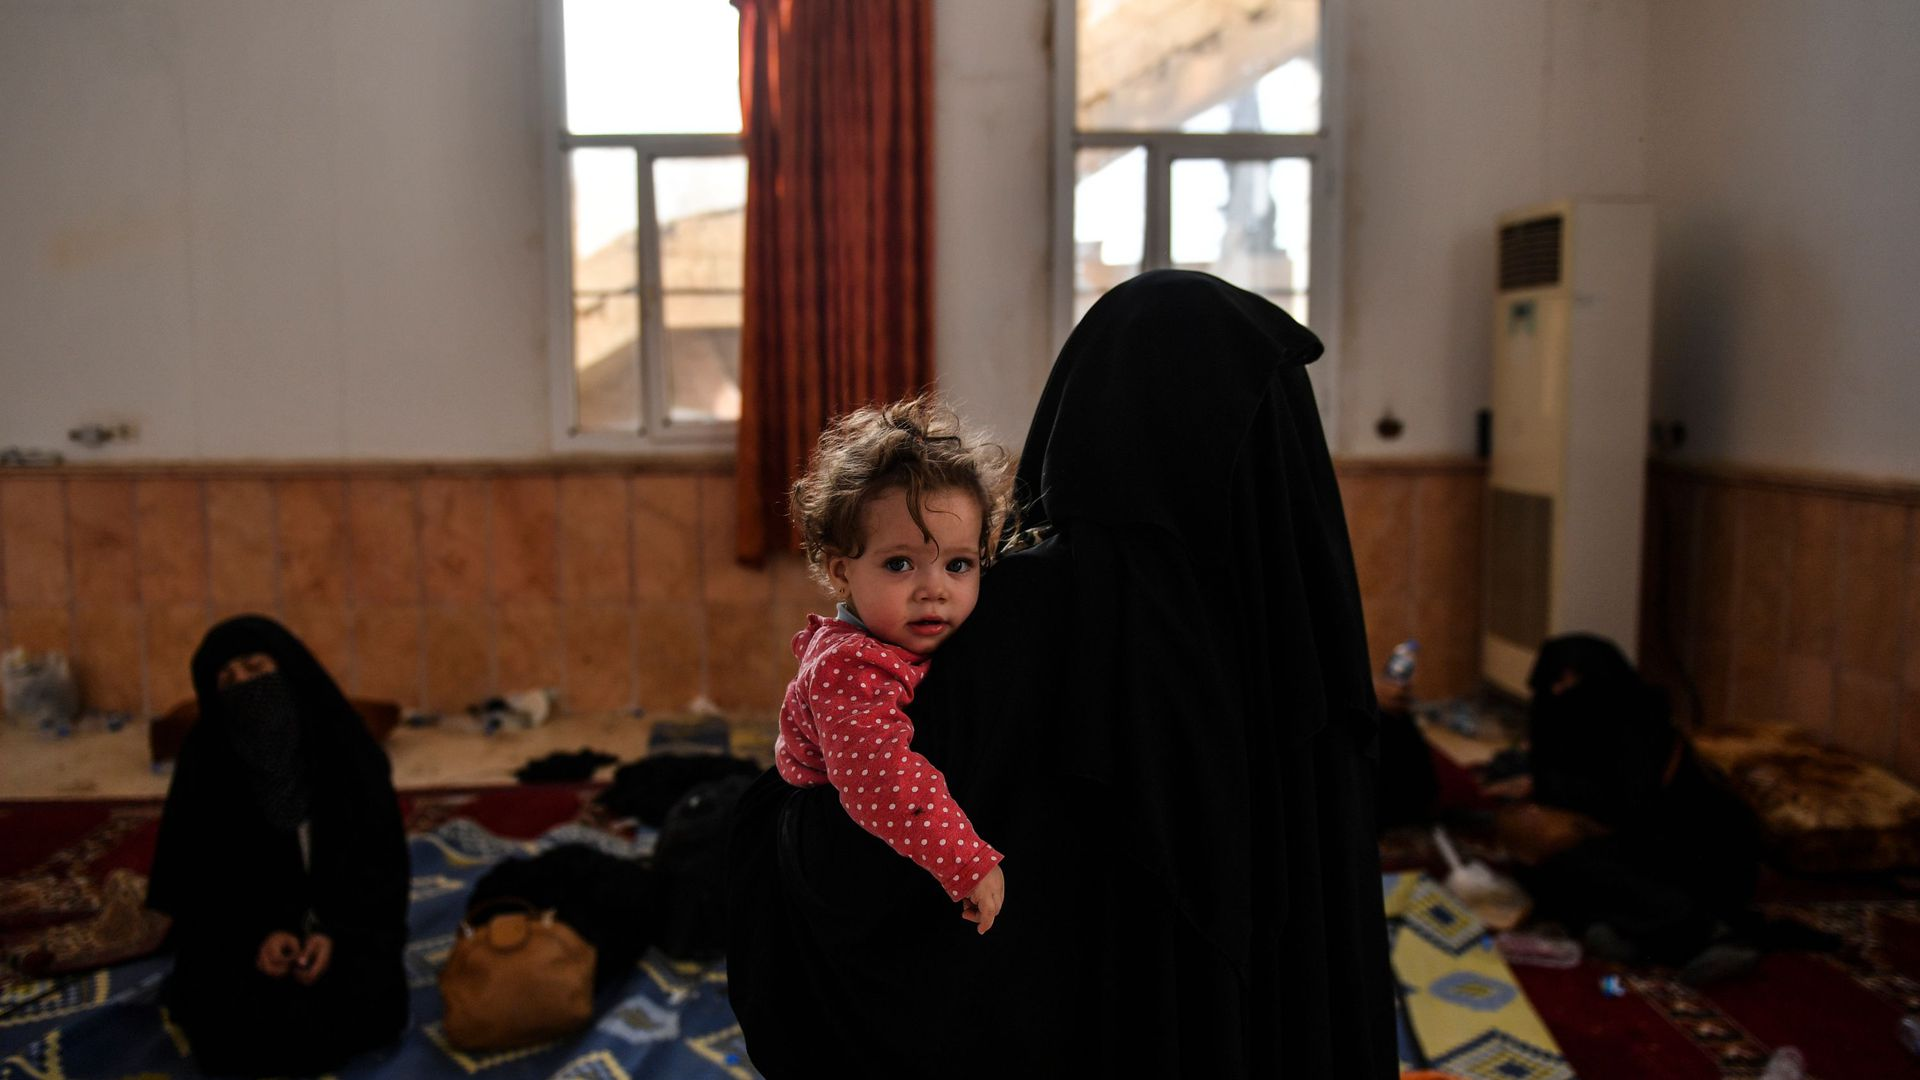 A woman holds a child in an open room.